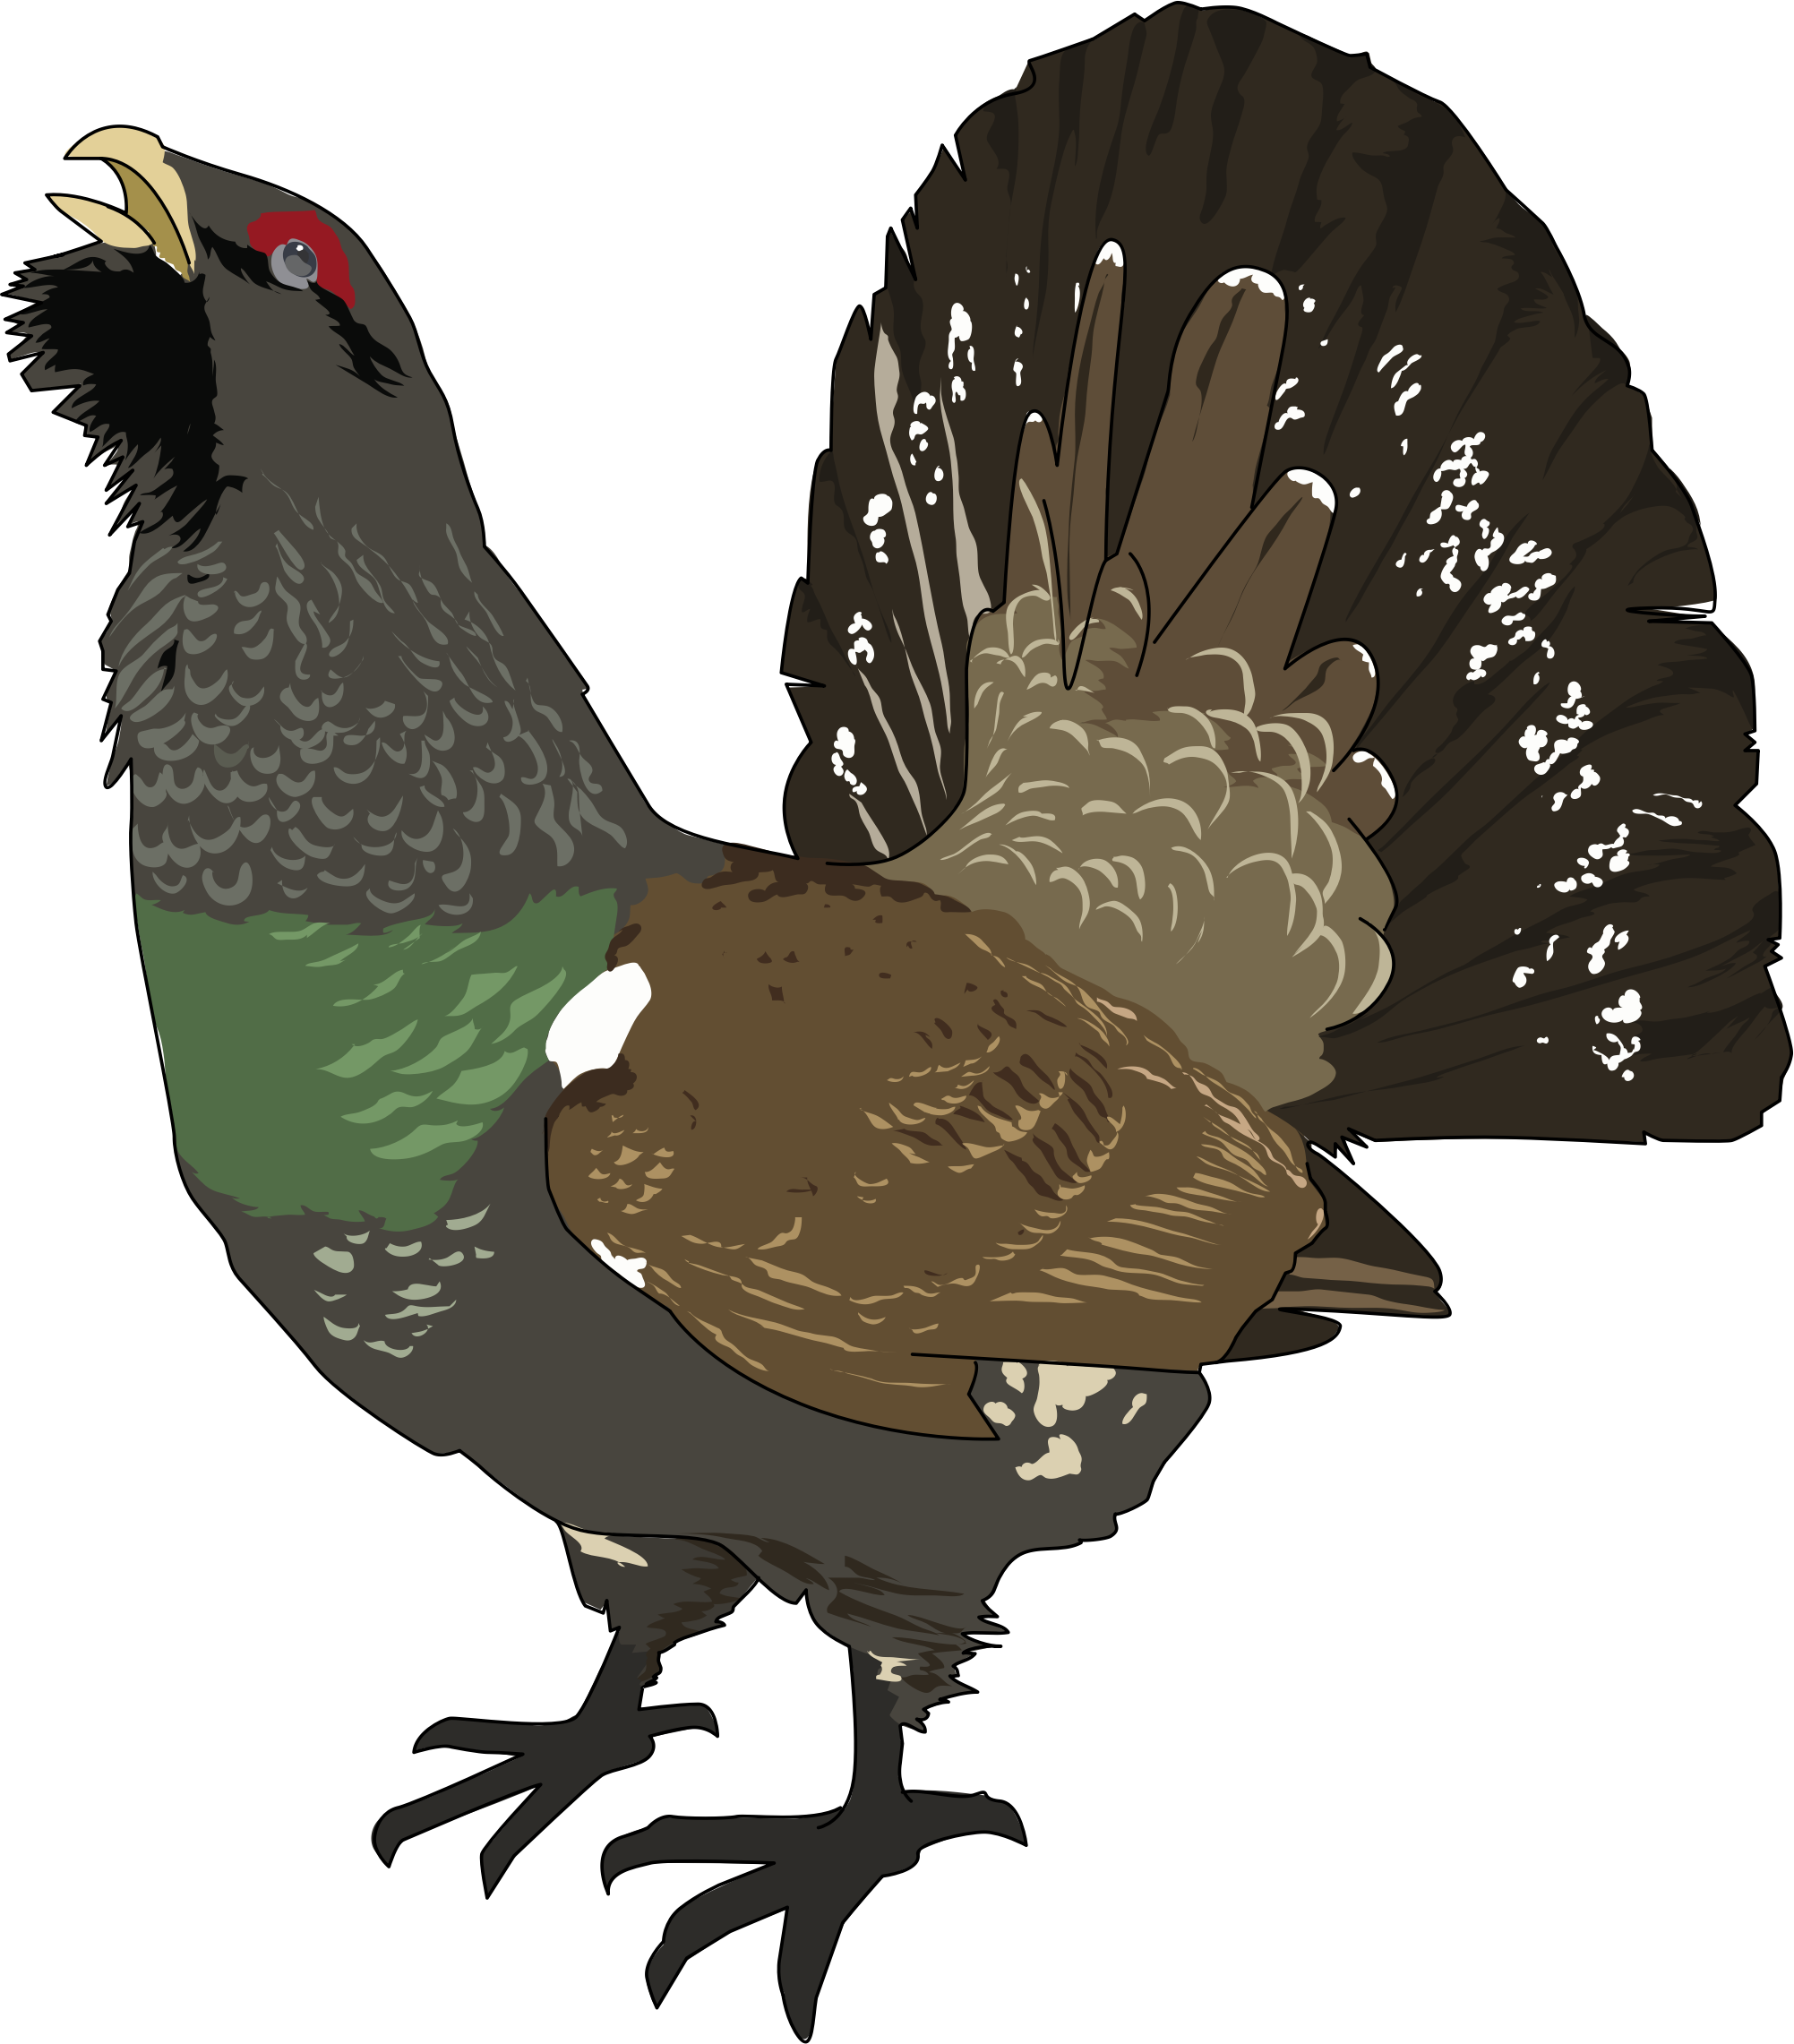 Grand tetra (Coq de bruyere) - Grouse by enolynn